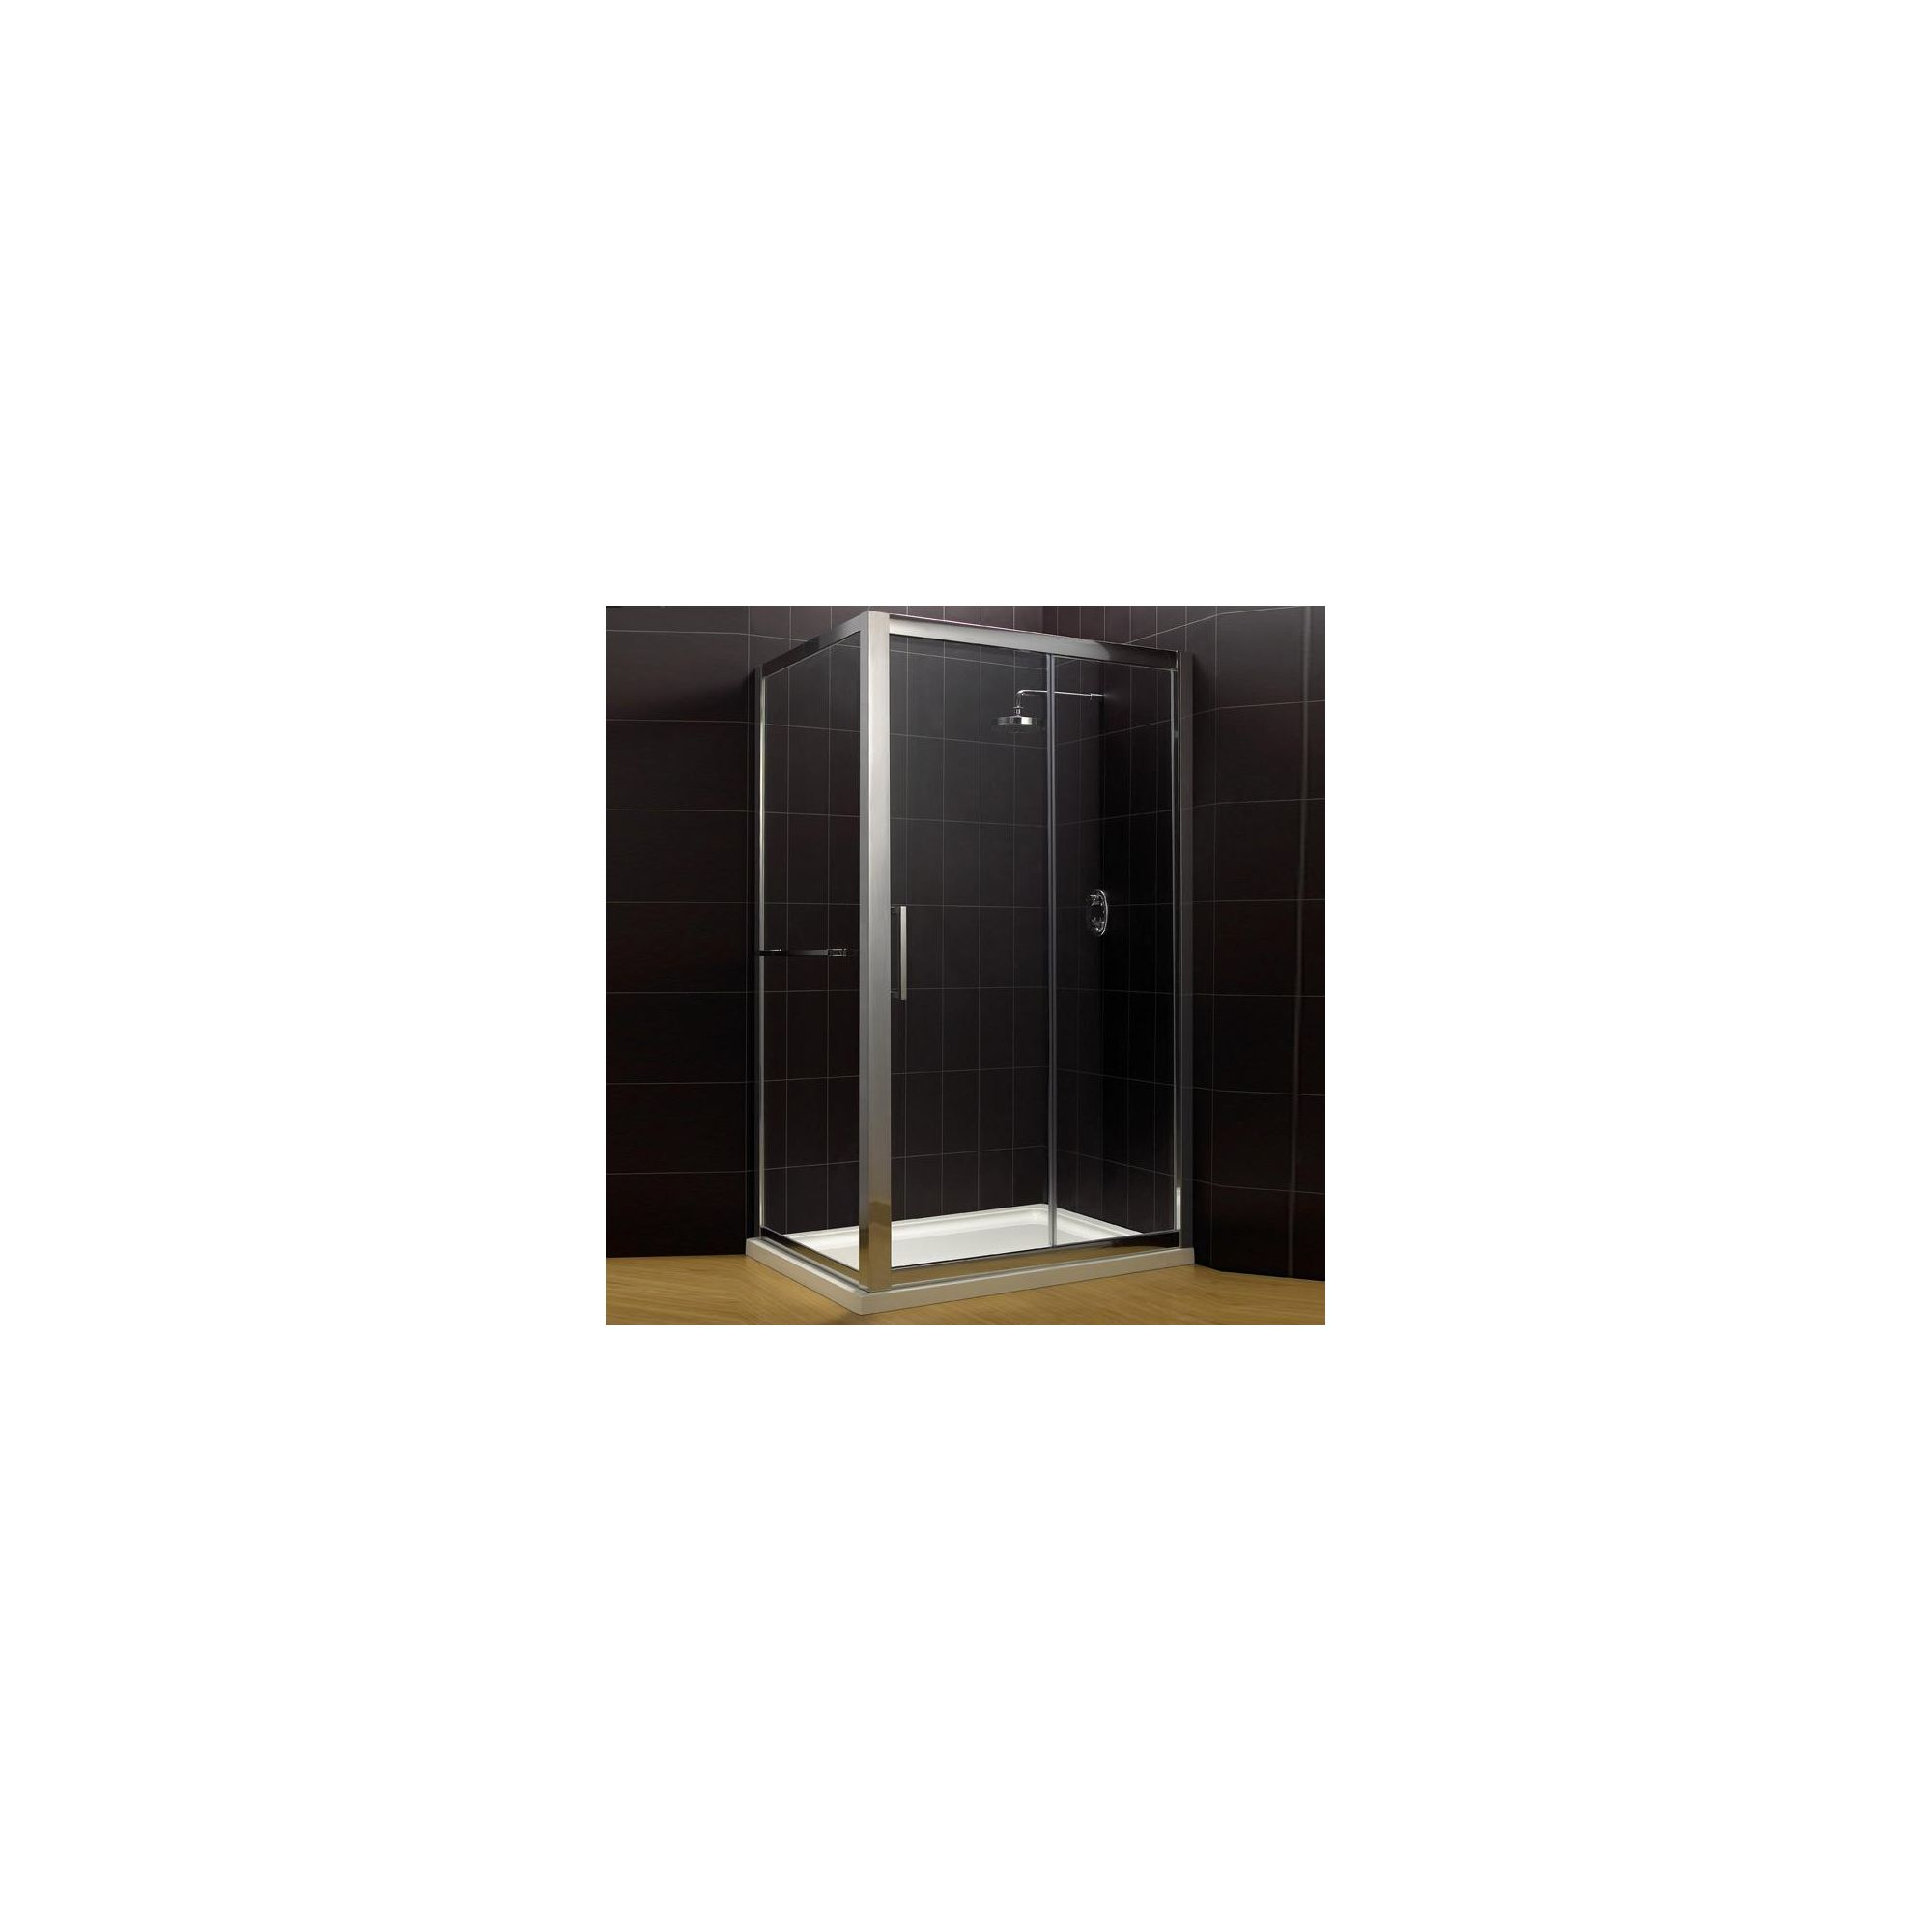 Duchy Supreme Silver Sliding Door Shower Enclosure, 1100mm x 900mm, Standard Tray, 8mm Glass at Tesco Direct